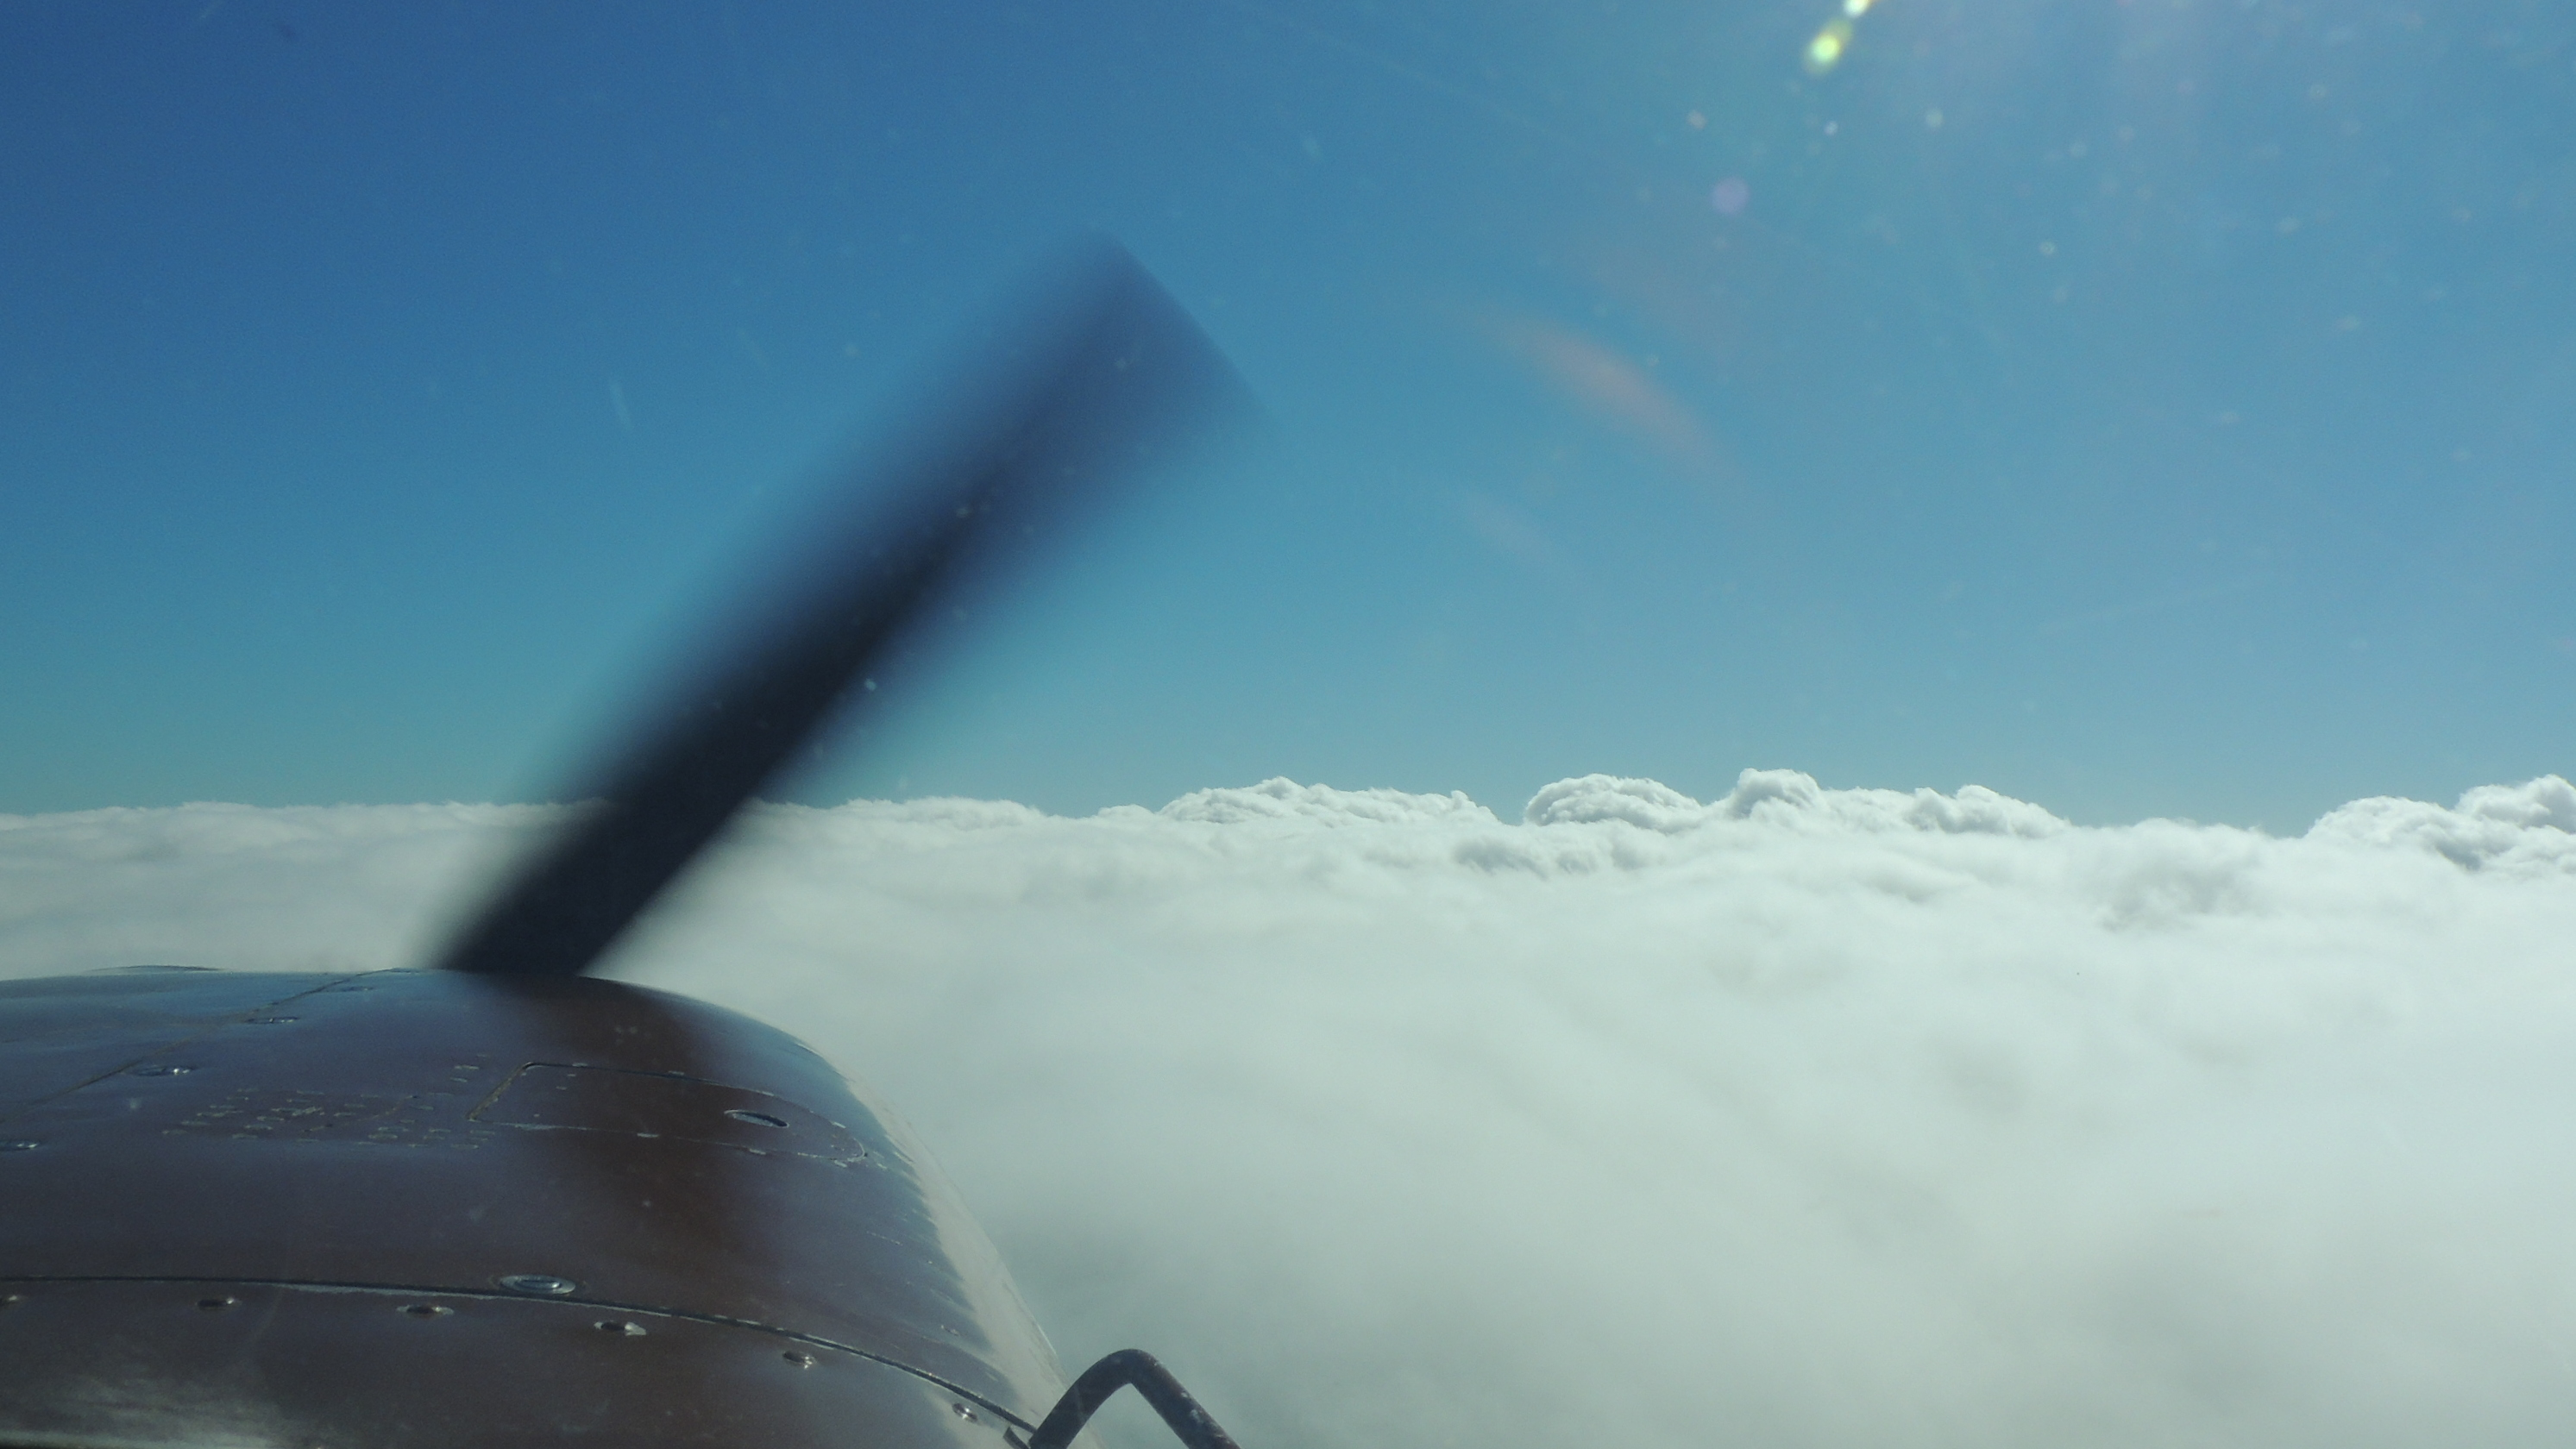 Climbing back up and over the cloud deck heading to Stafford VA